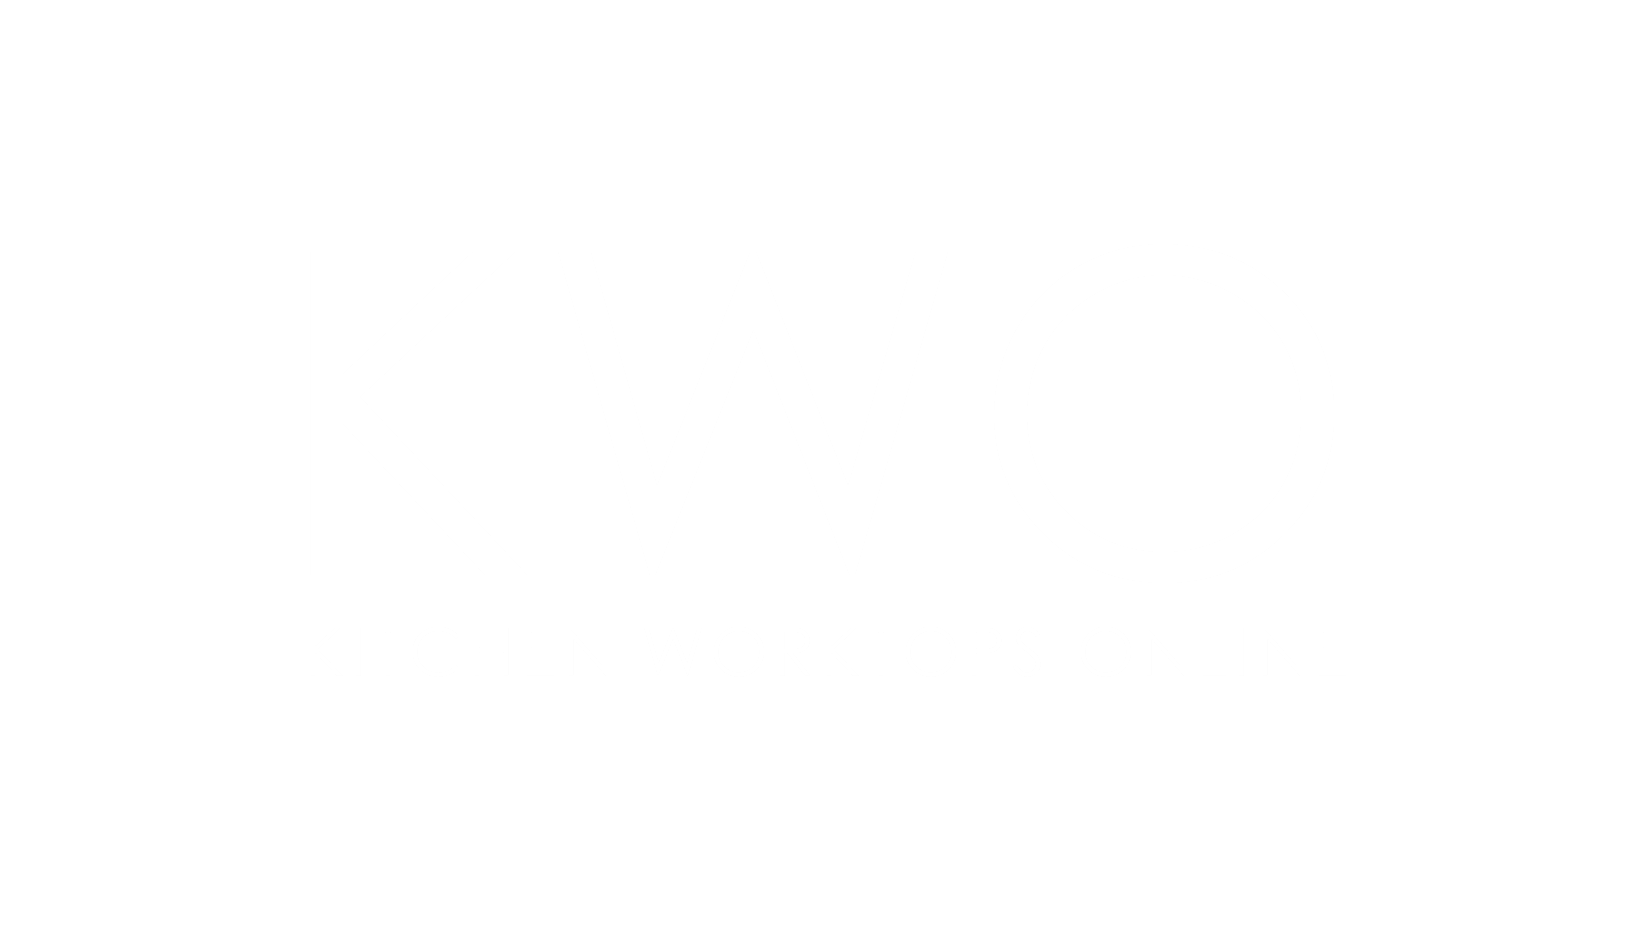 Kitchen Worktops Online | Low Price Worktops Direct Delivery To Your Home Or On-Site